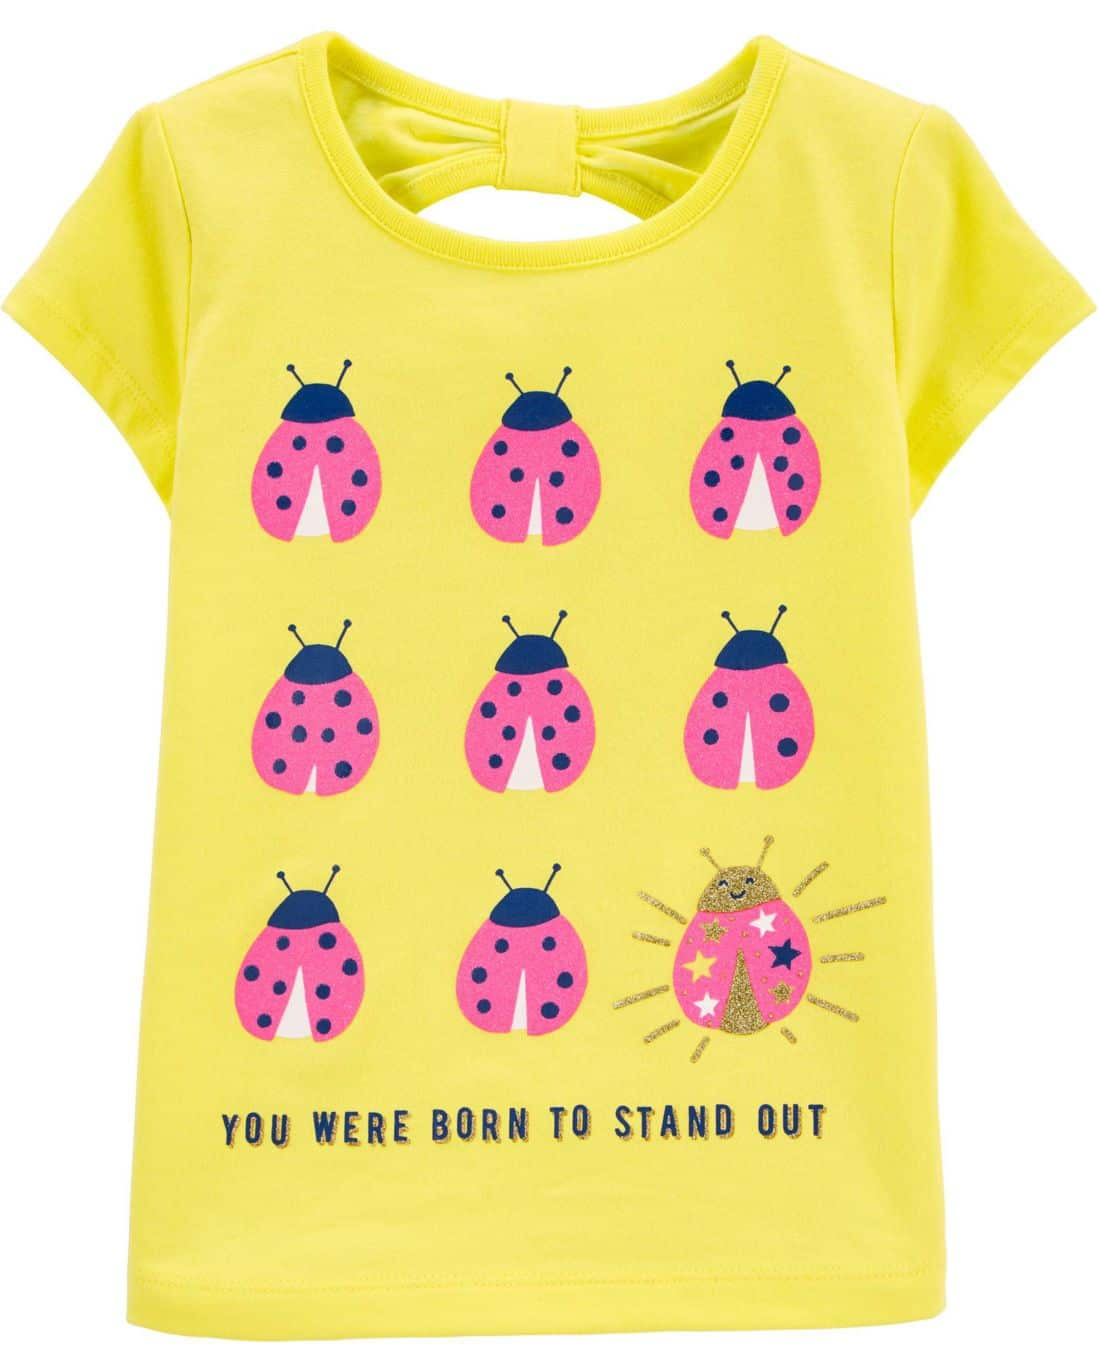 Camiseta Born To Stand Out Carter's - Amarelo